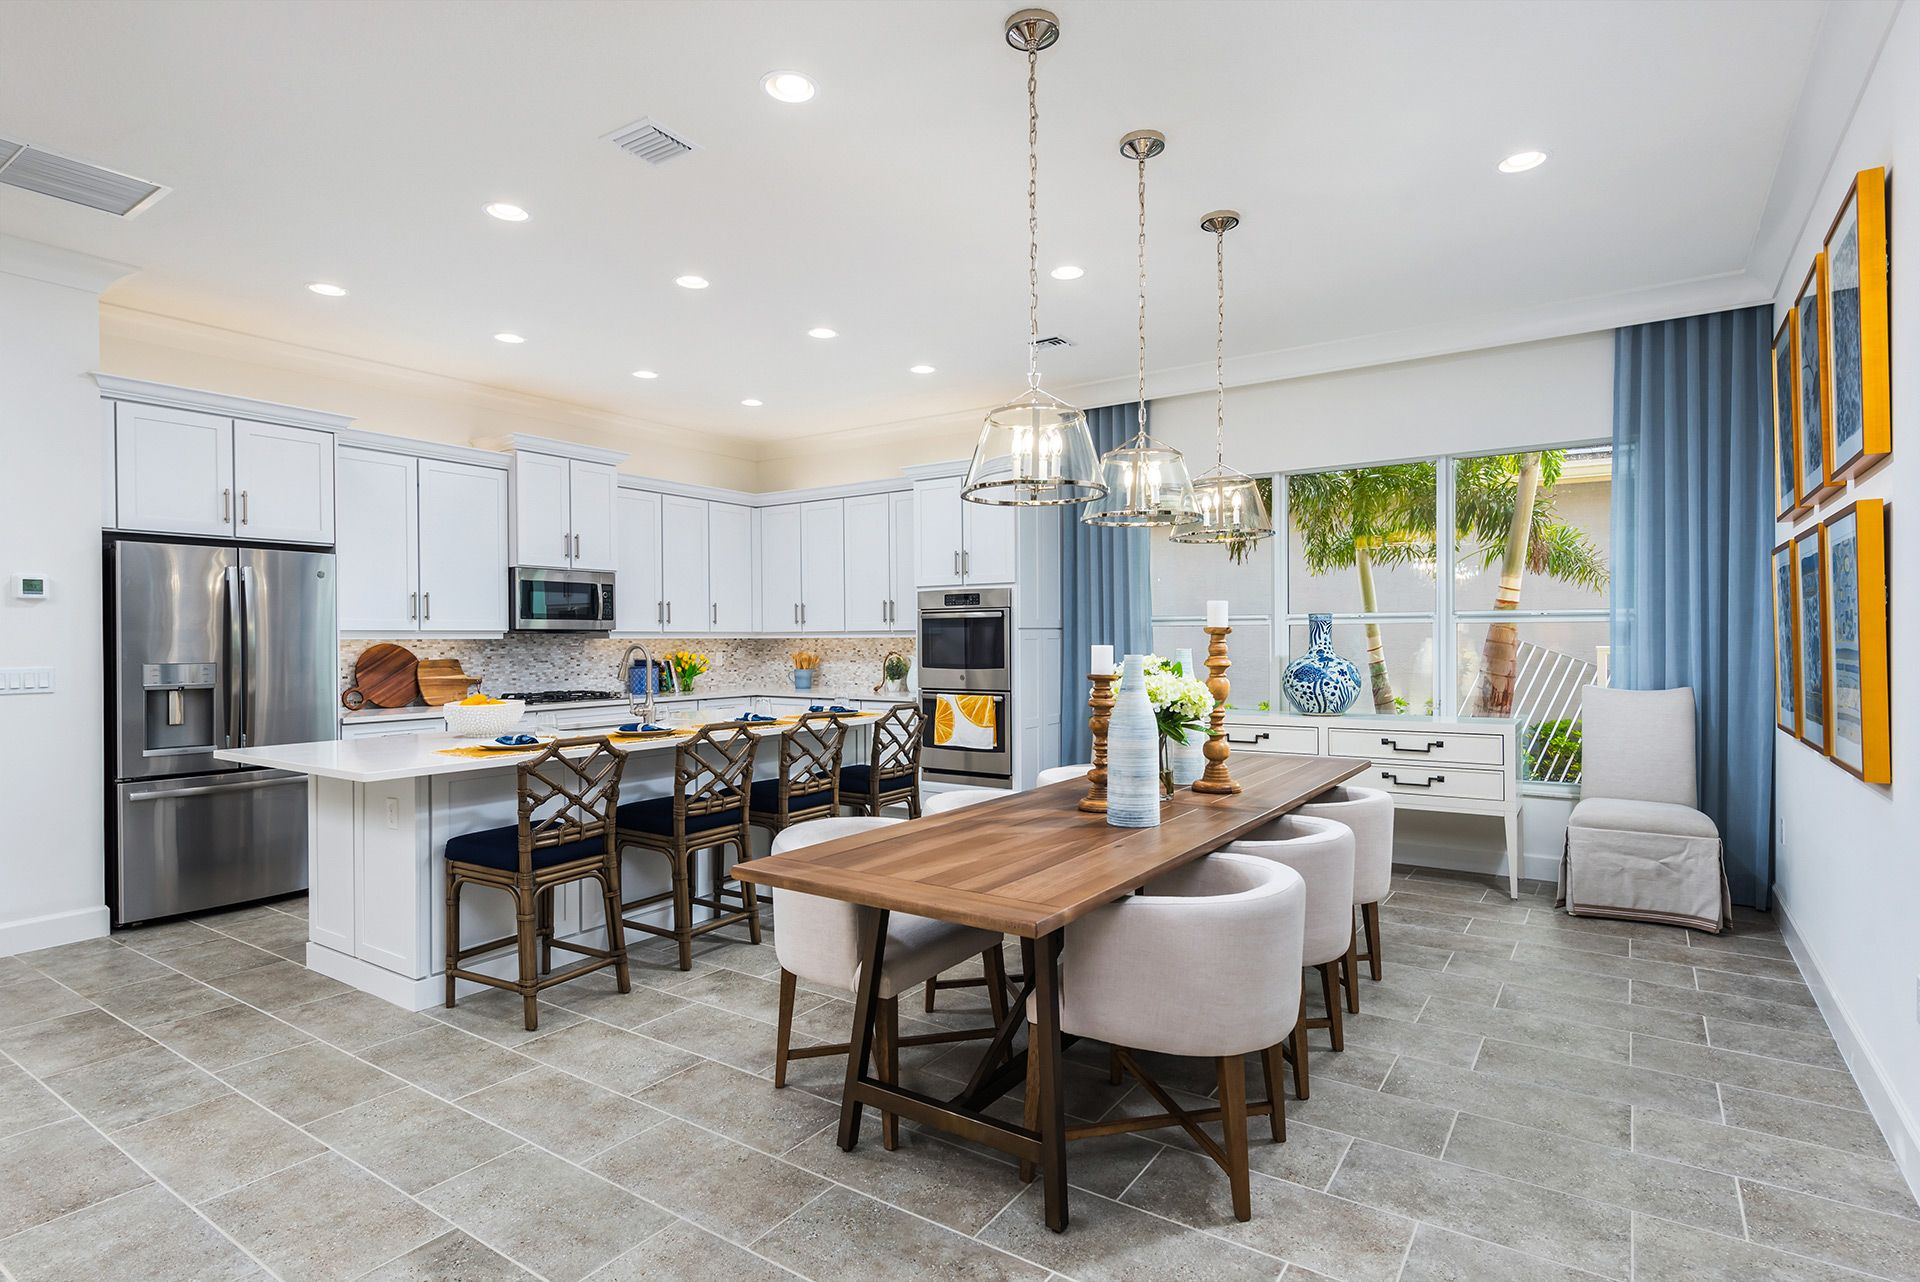 Kitchen featured in the Bianca By GL Homes in Martin-St. Lucie-Okeechobee Counties, FL